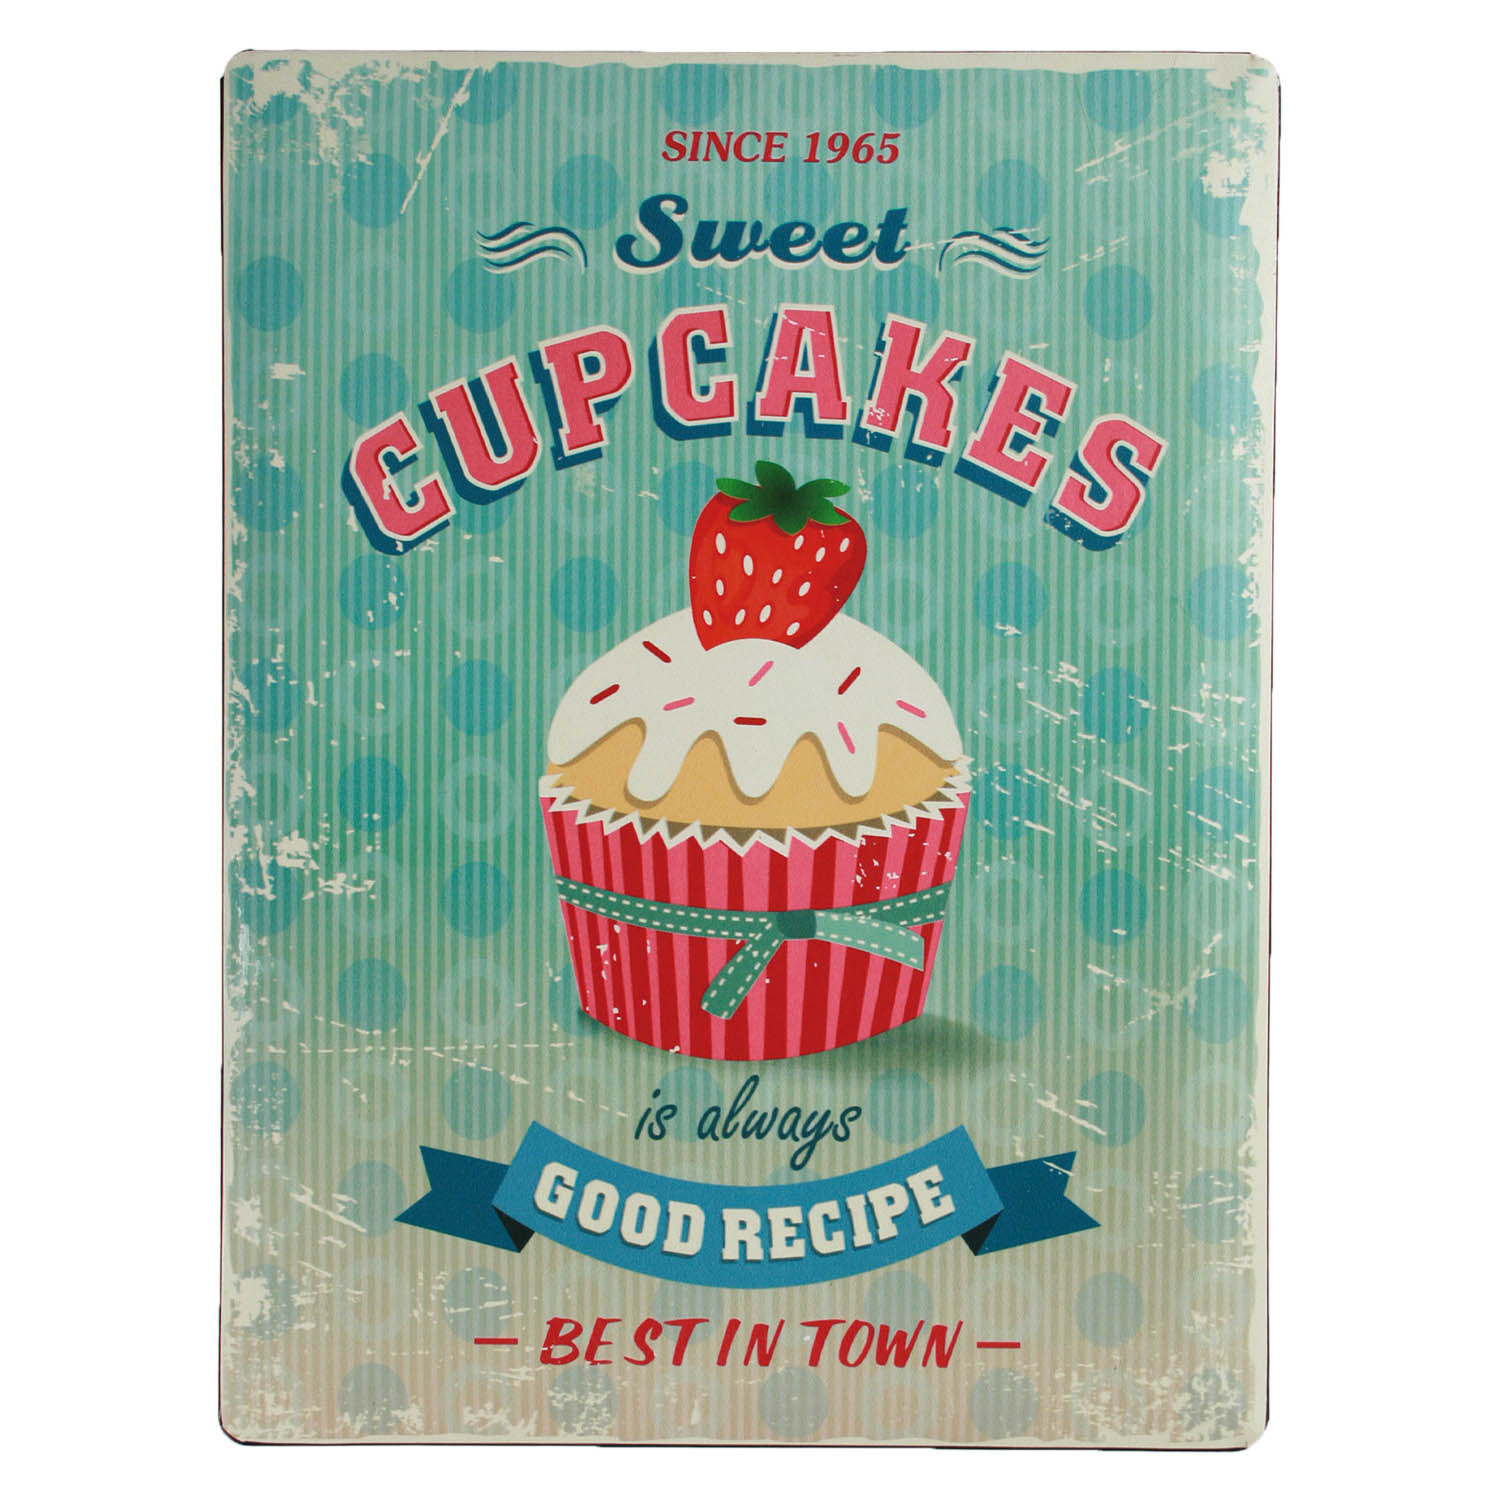 Details about Sweet Cupcakes Large Metal Wall Plaque Hanging Home Kitchen  Decoration Ornament